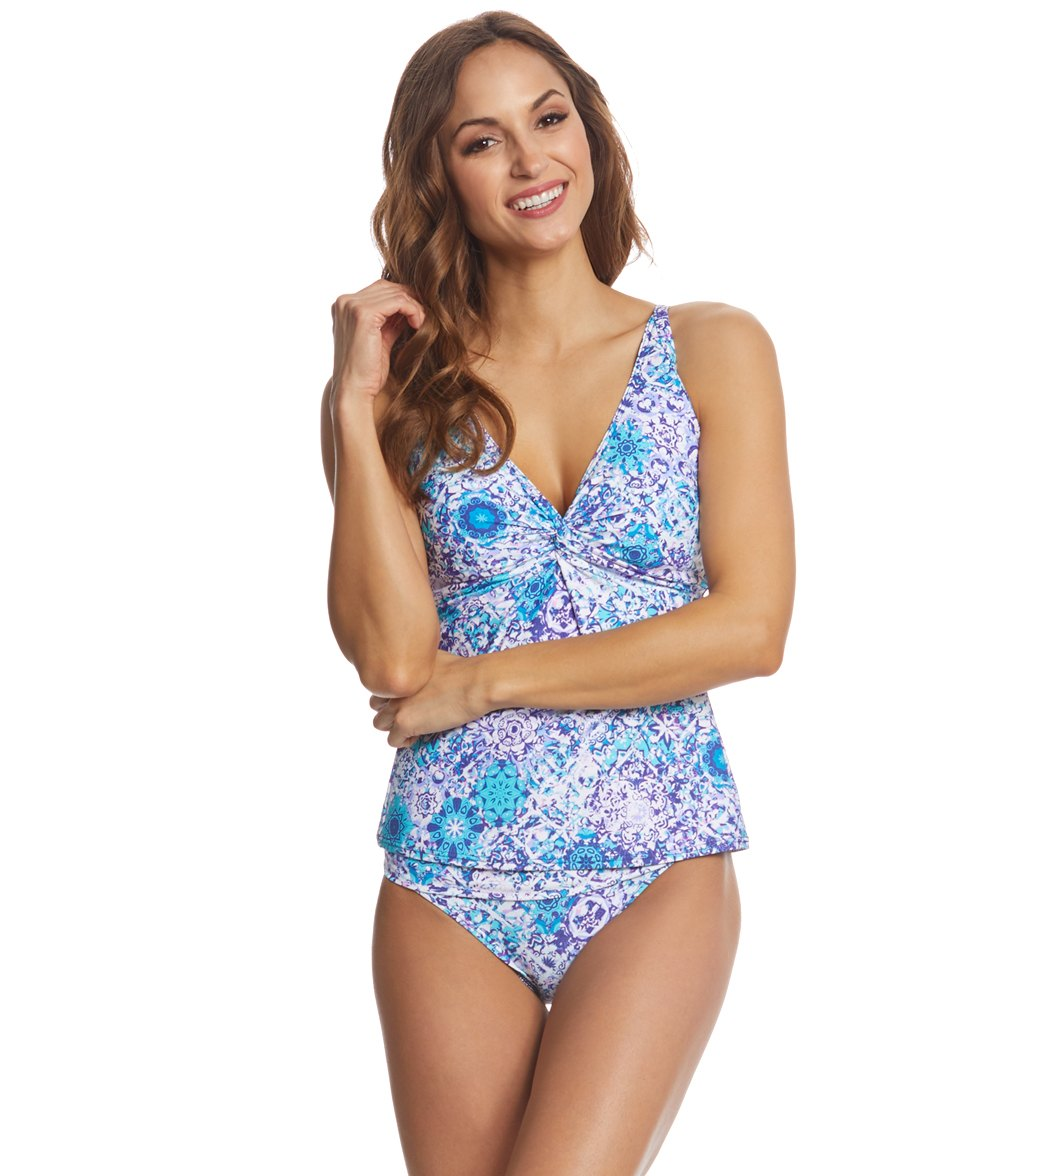 74007099605 Sunsets Odyssea Forever Tankini Top (D DD Cup) at SwimOutlet.com ...